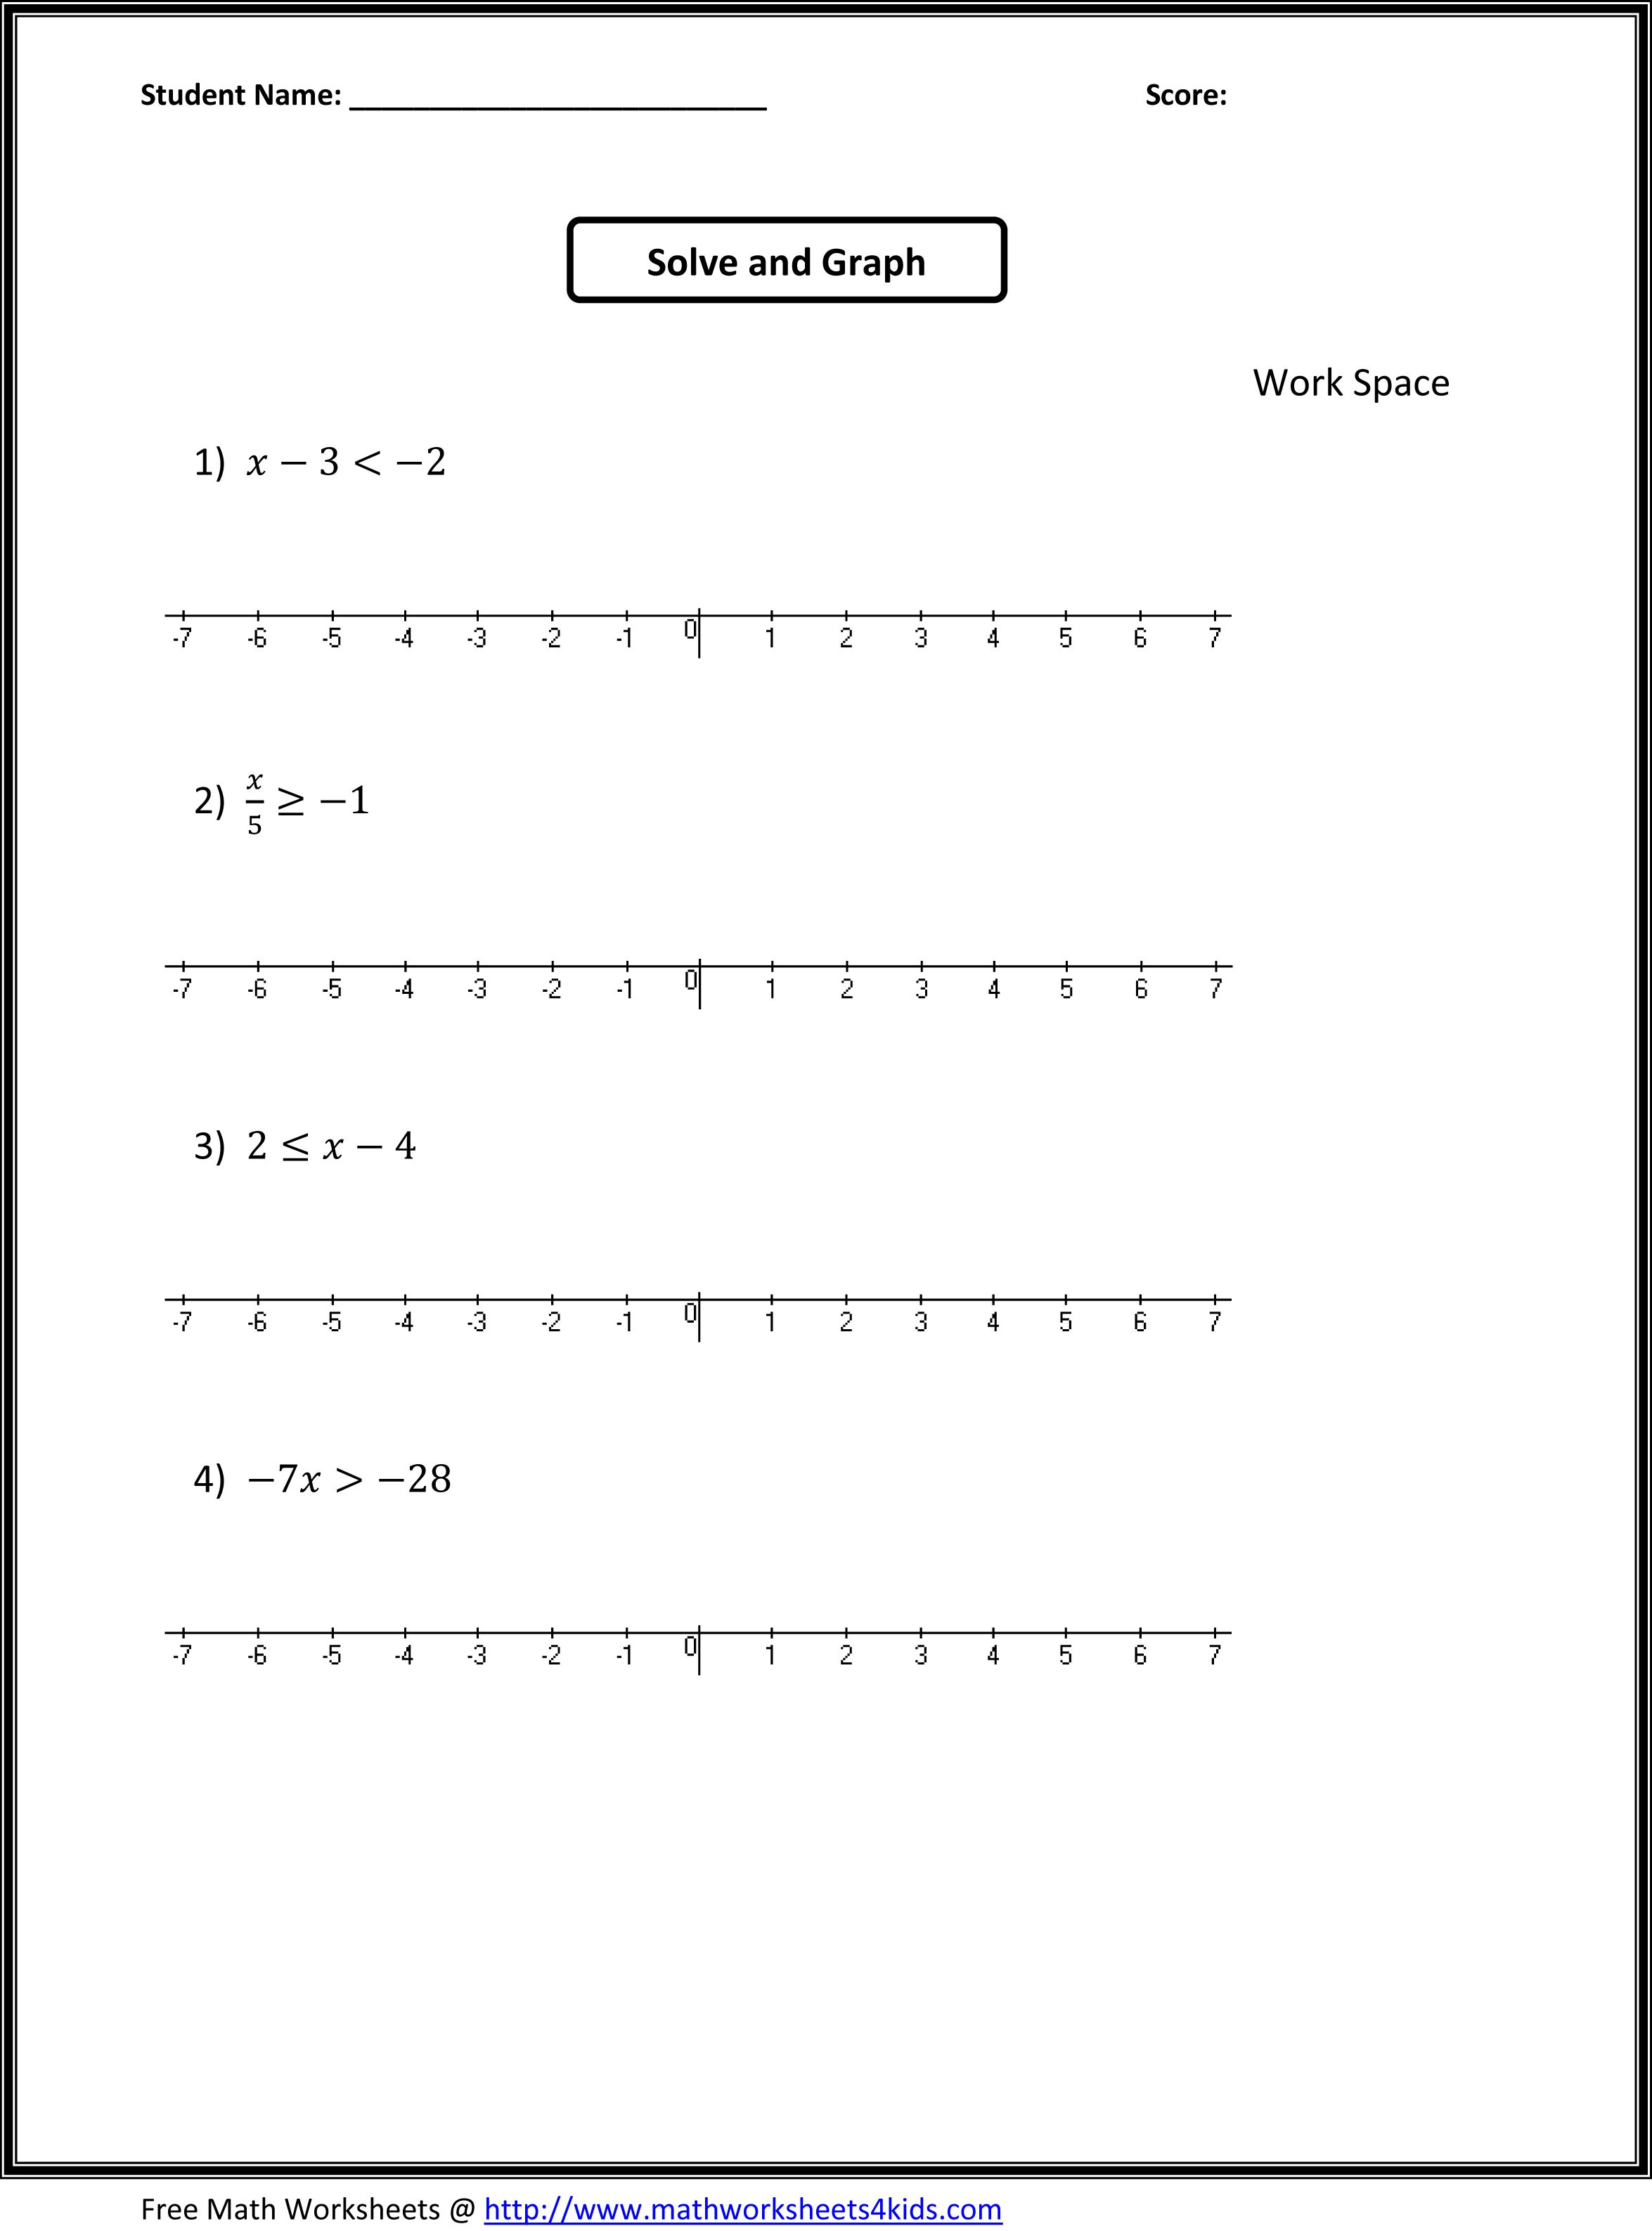 7th Grade Algebra Worksheets 7th Grade Math Worksheets – 7th Grade Pre Algebra Worksheets